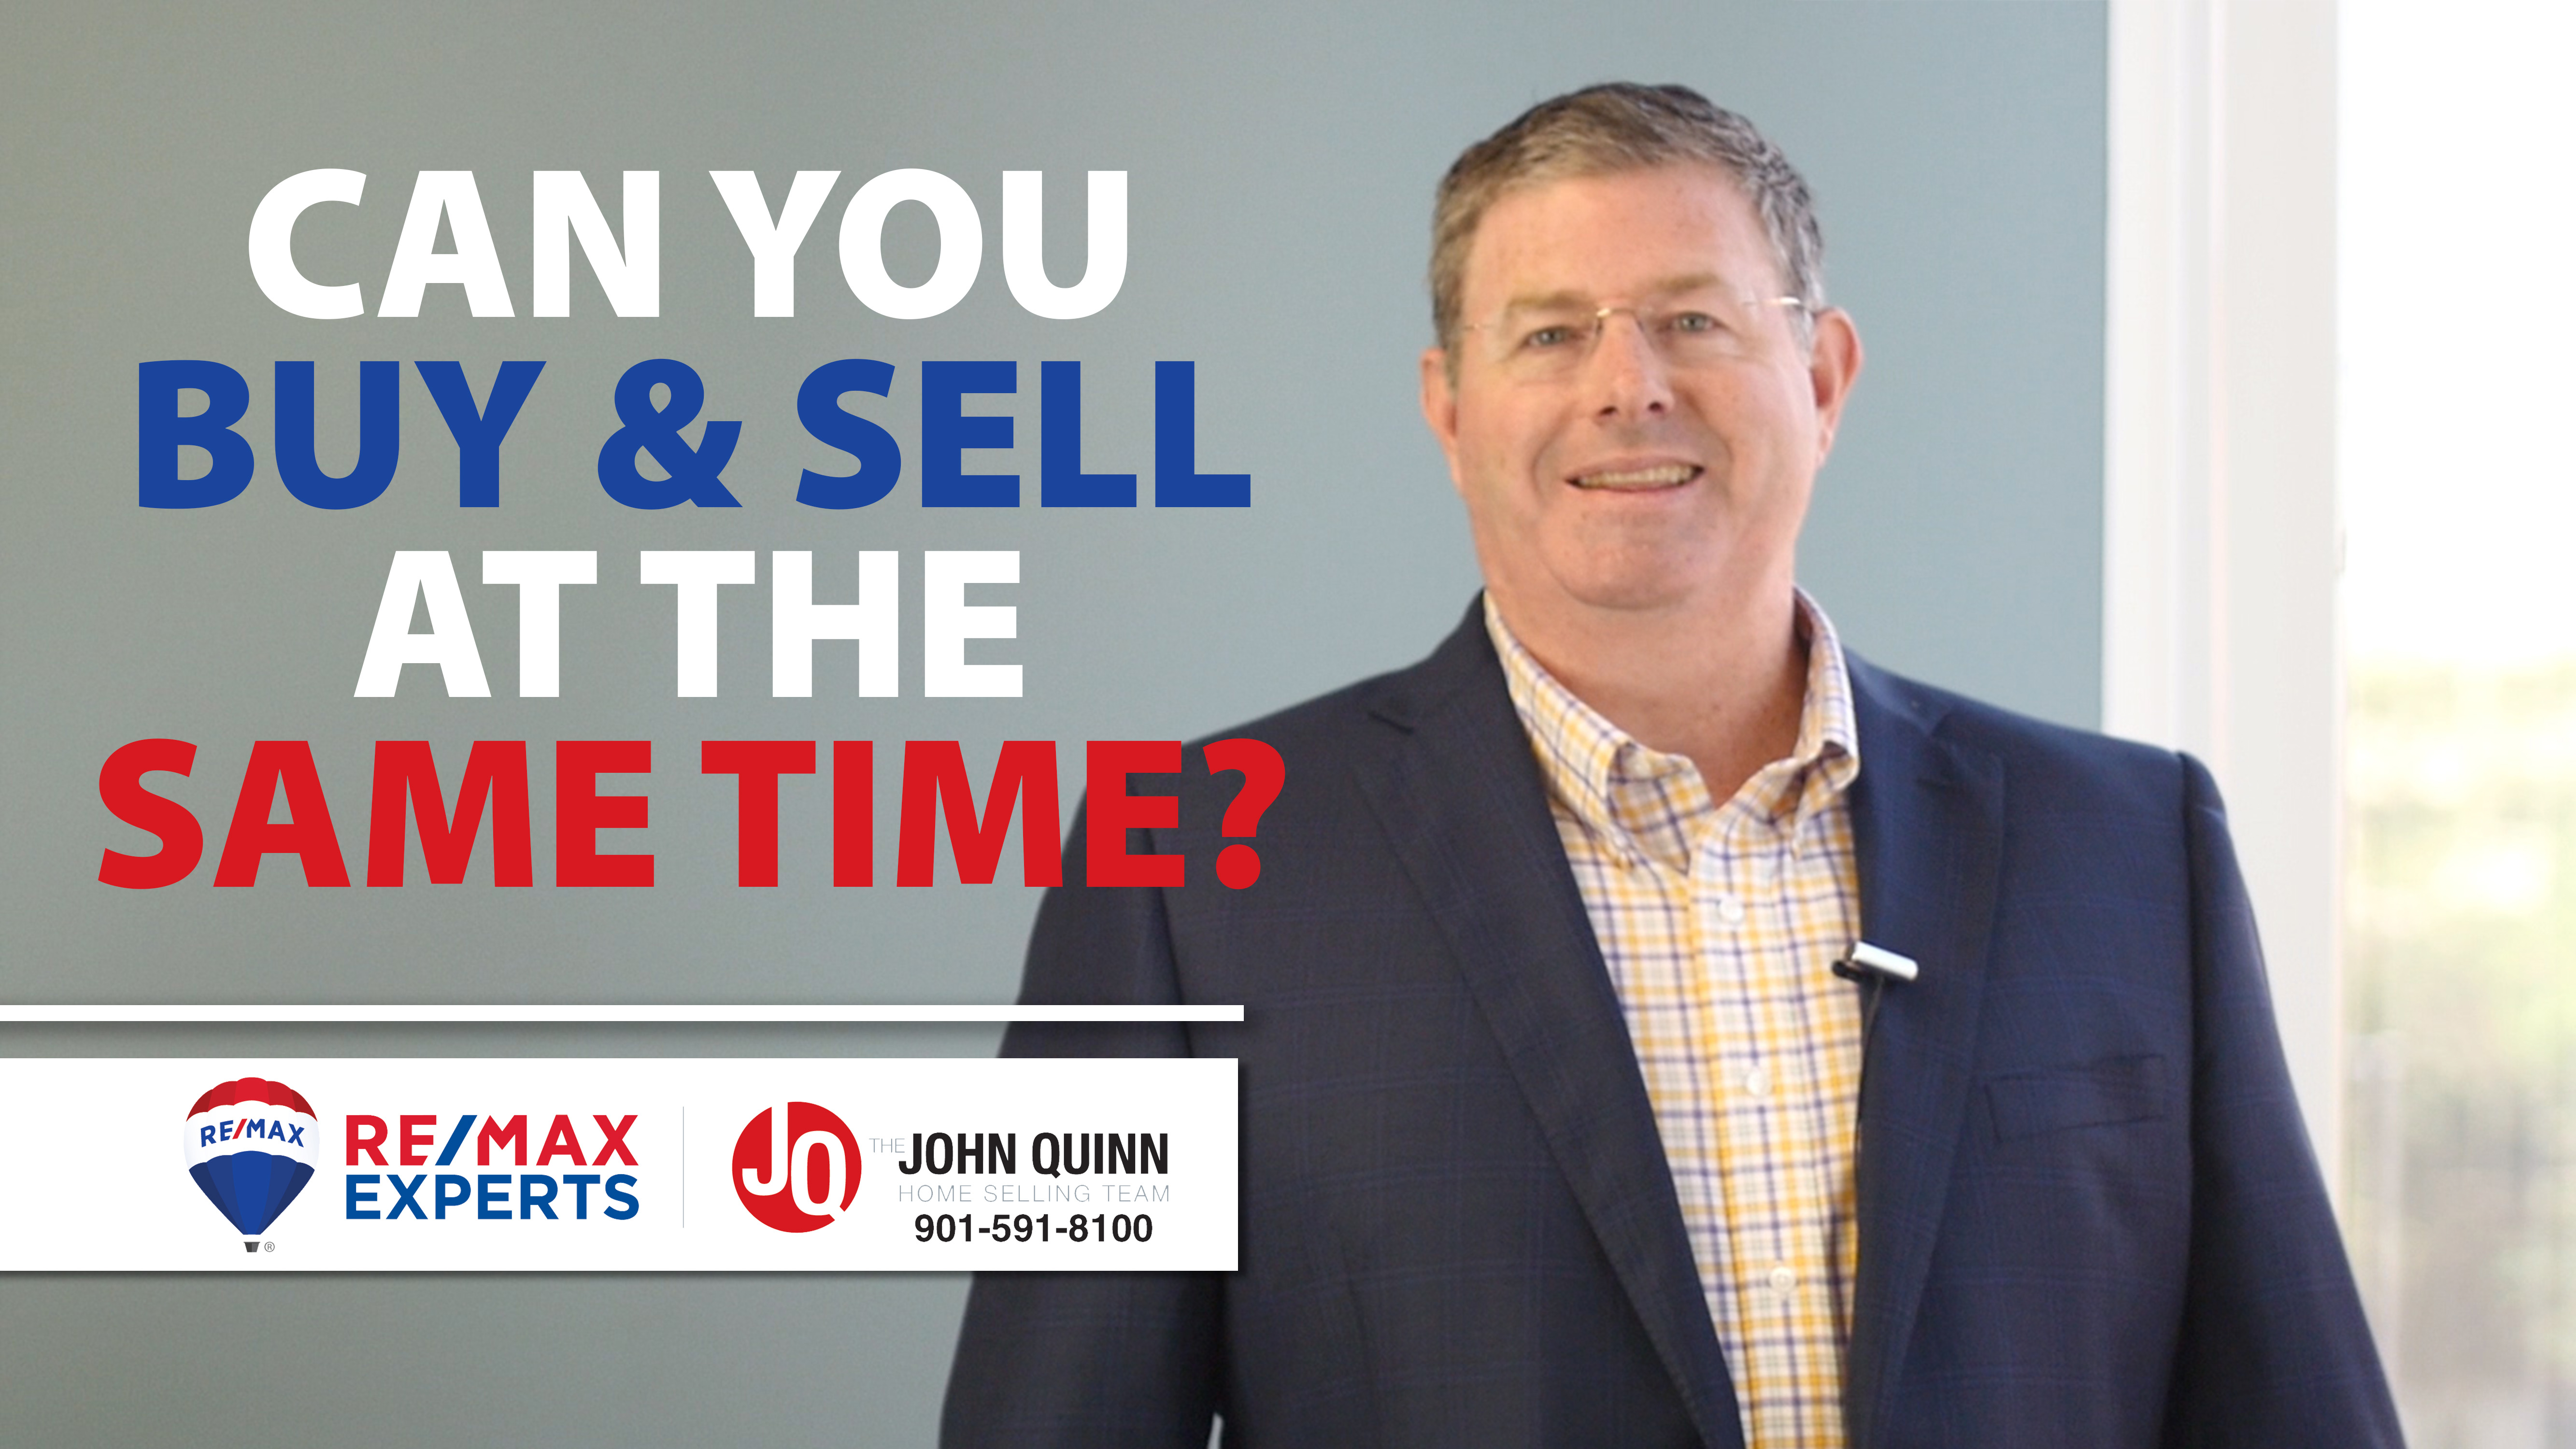 How Do You Buy and Sell at the Same Time?